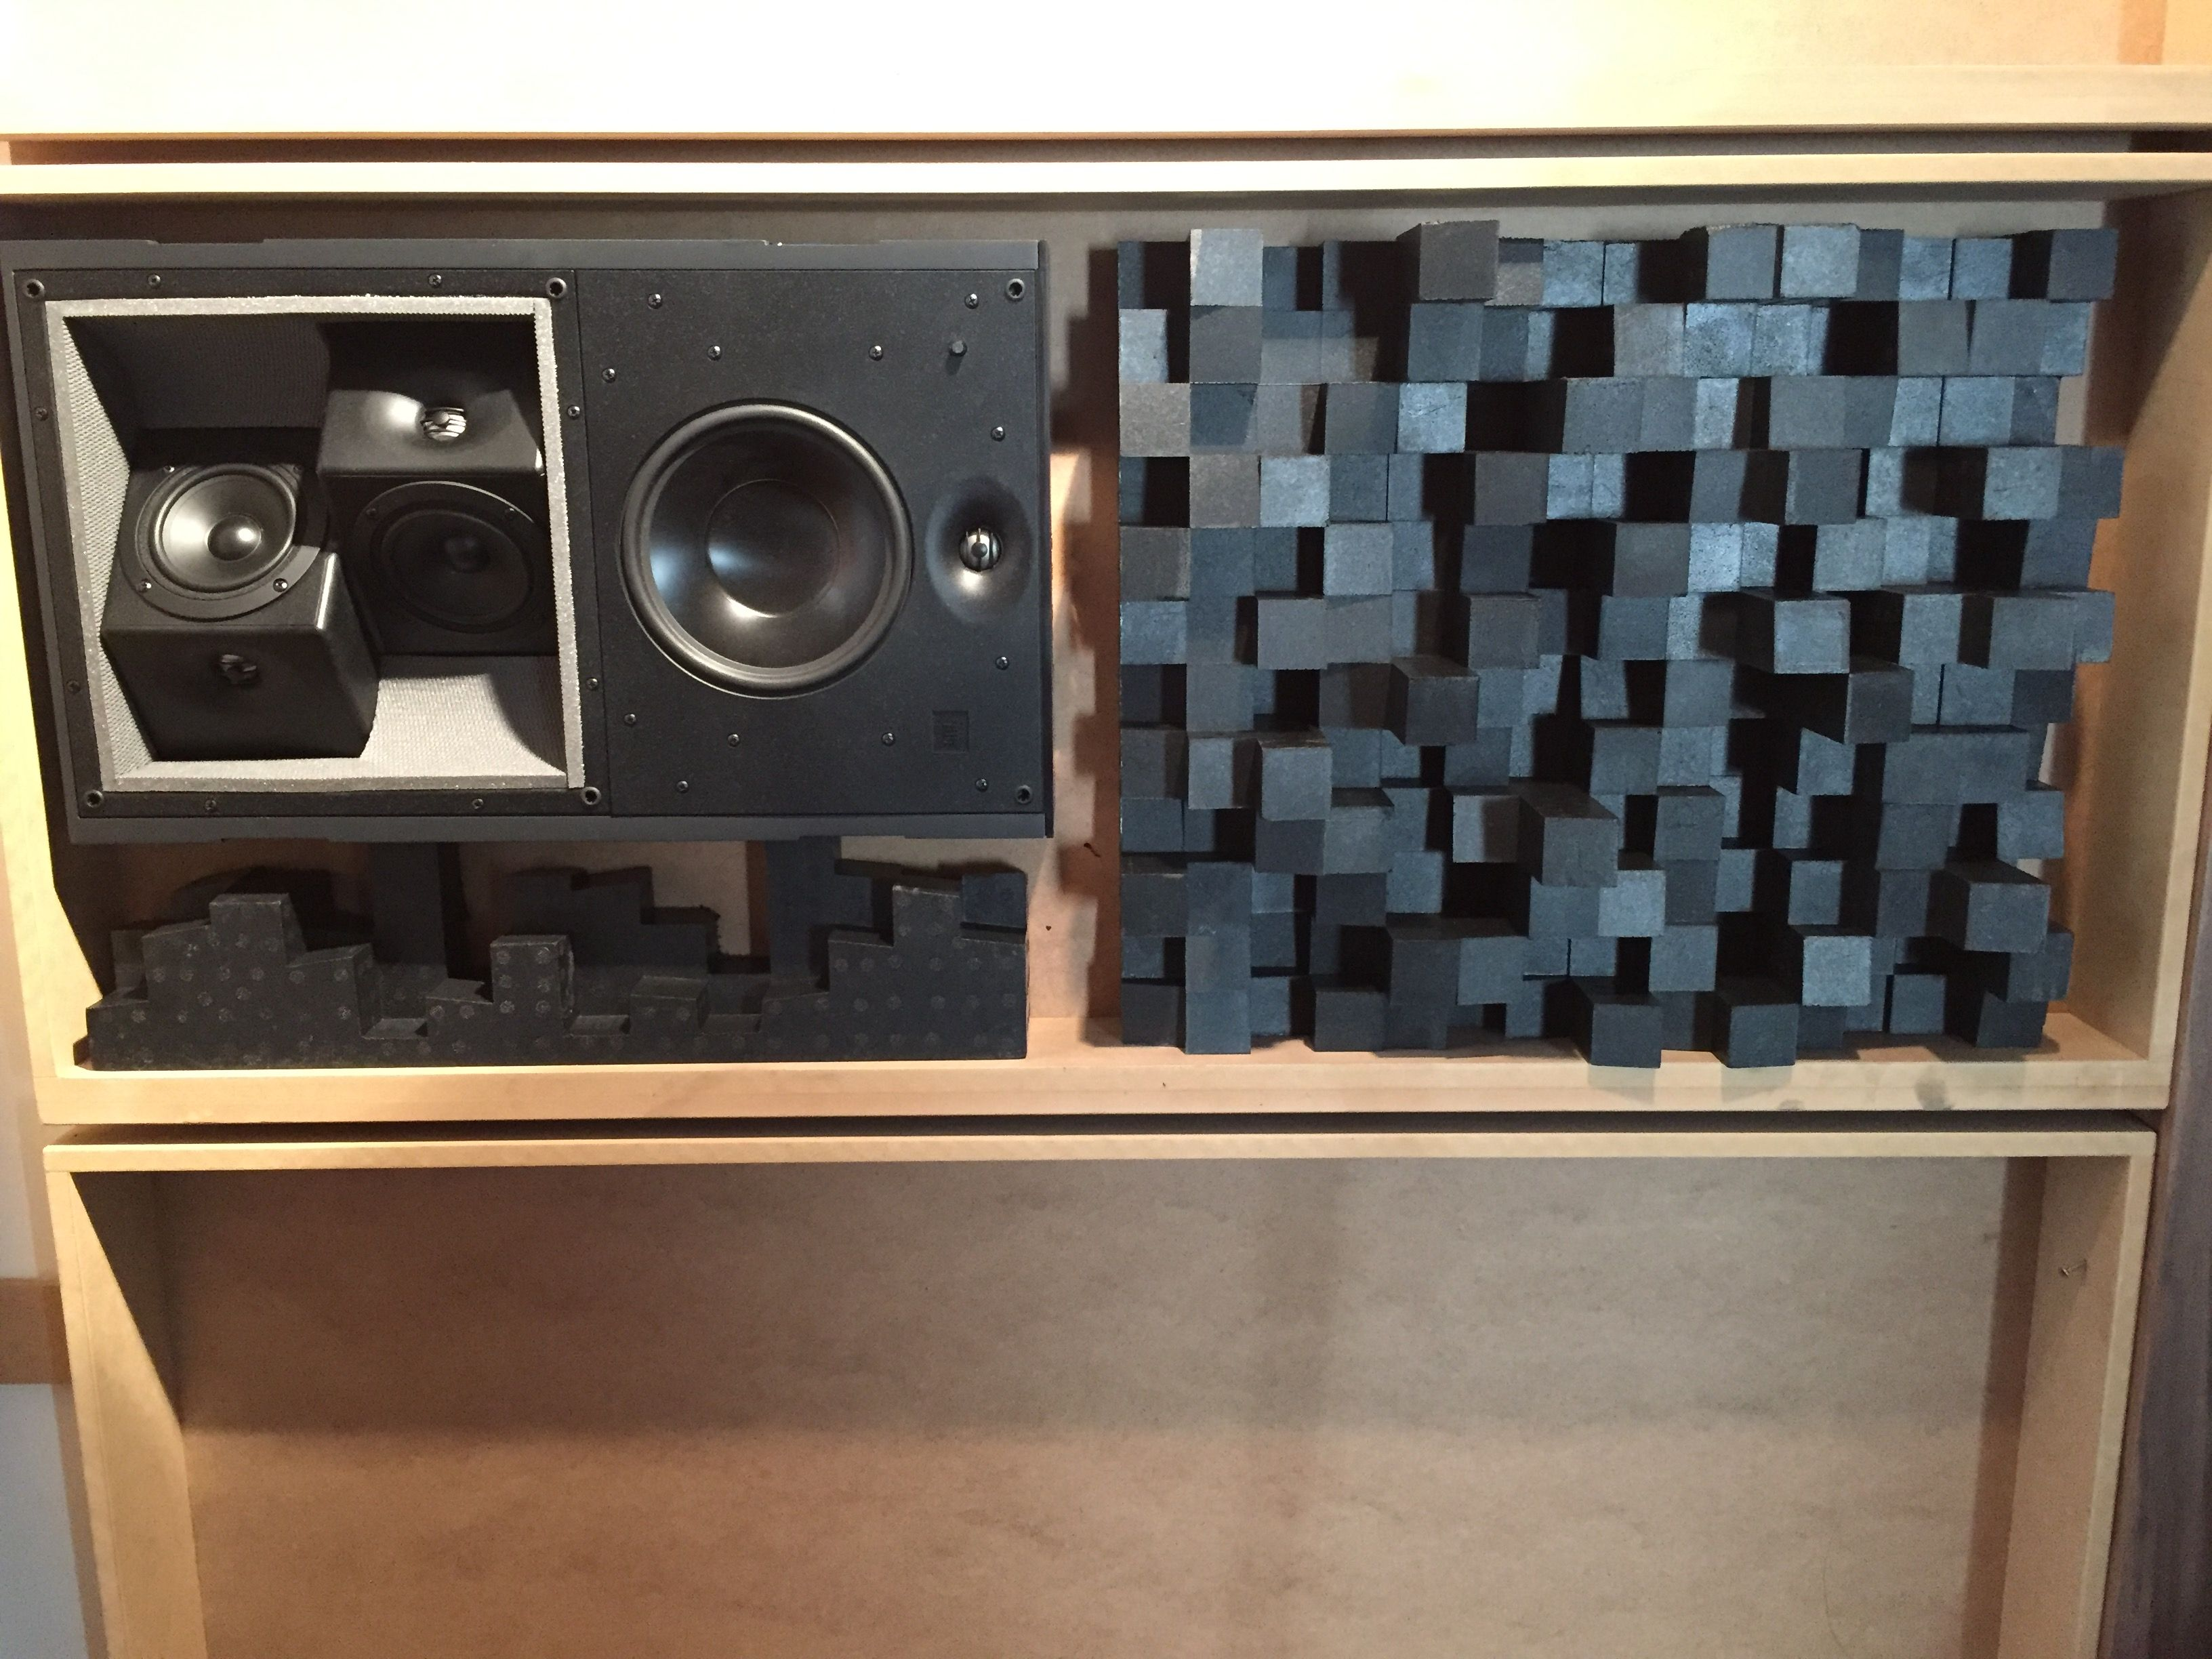 Jbl Synthesis S4ai Hp Surround Dipolaire Bipolaire Montage Au  # Support Mural Pour Enceinte Centrale Pioneer